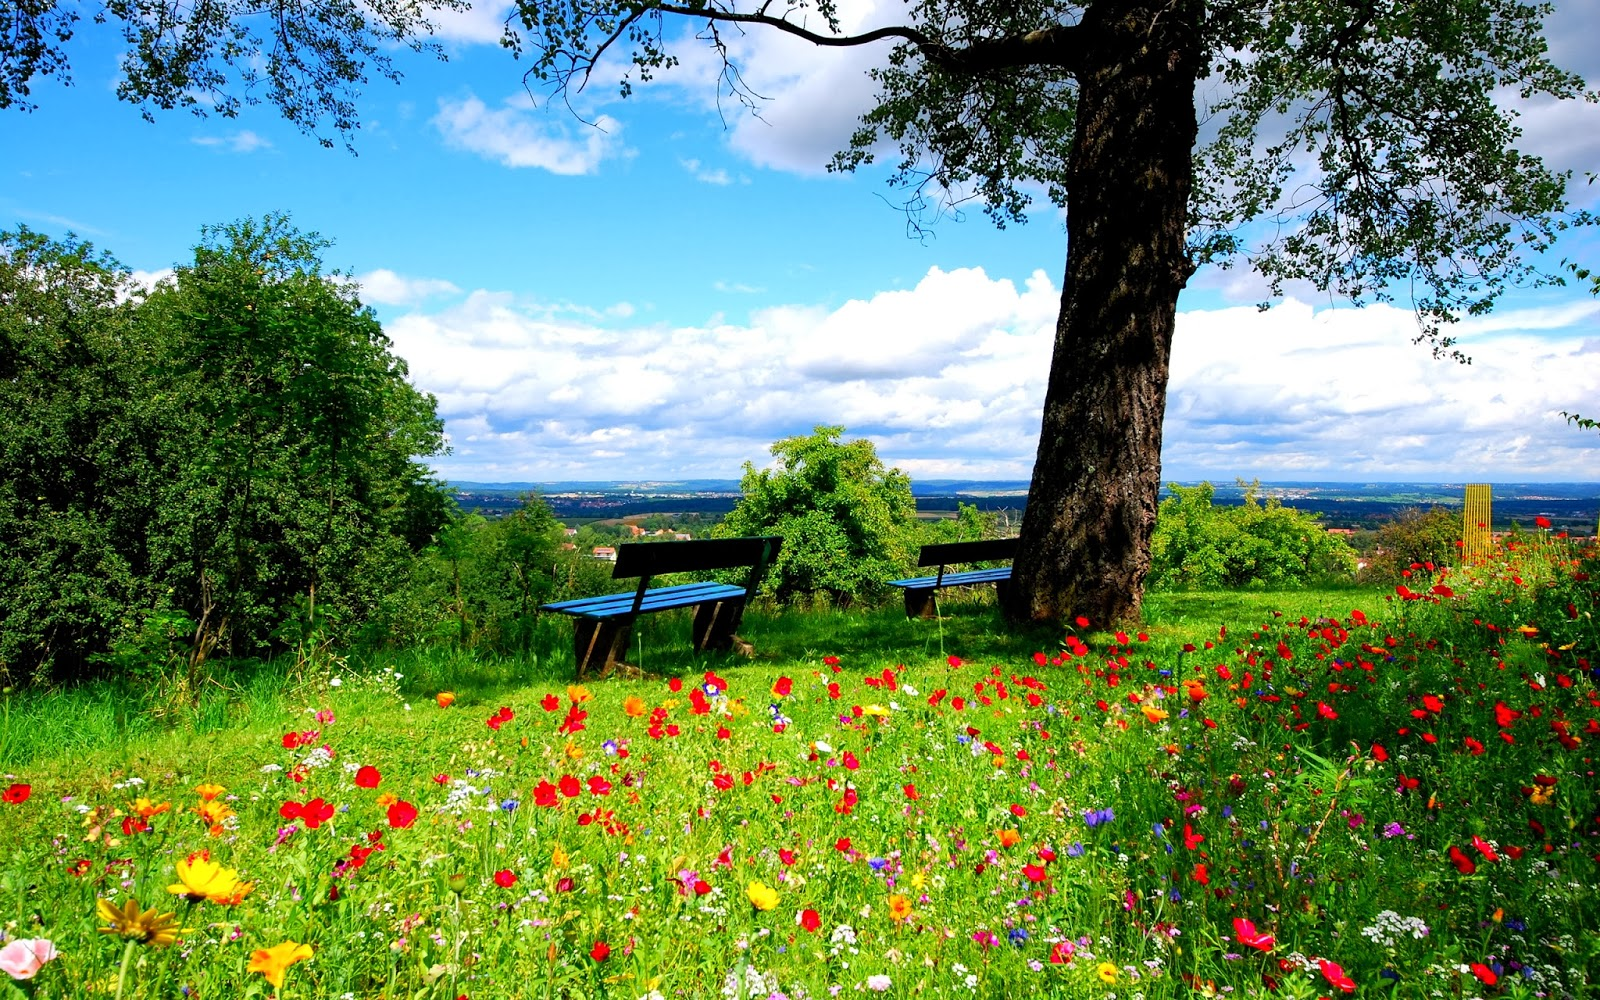 Peaceful hd wallpapers | Nice Pics Gallery